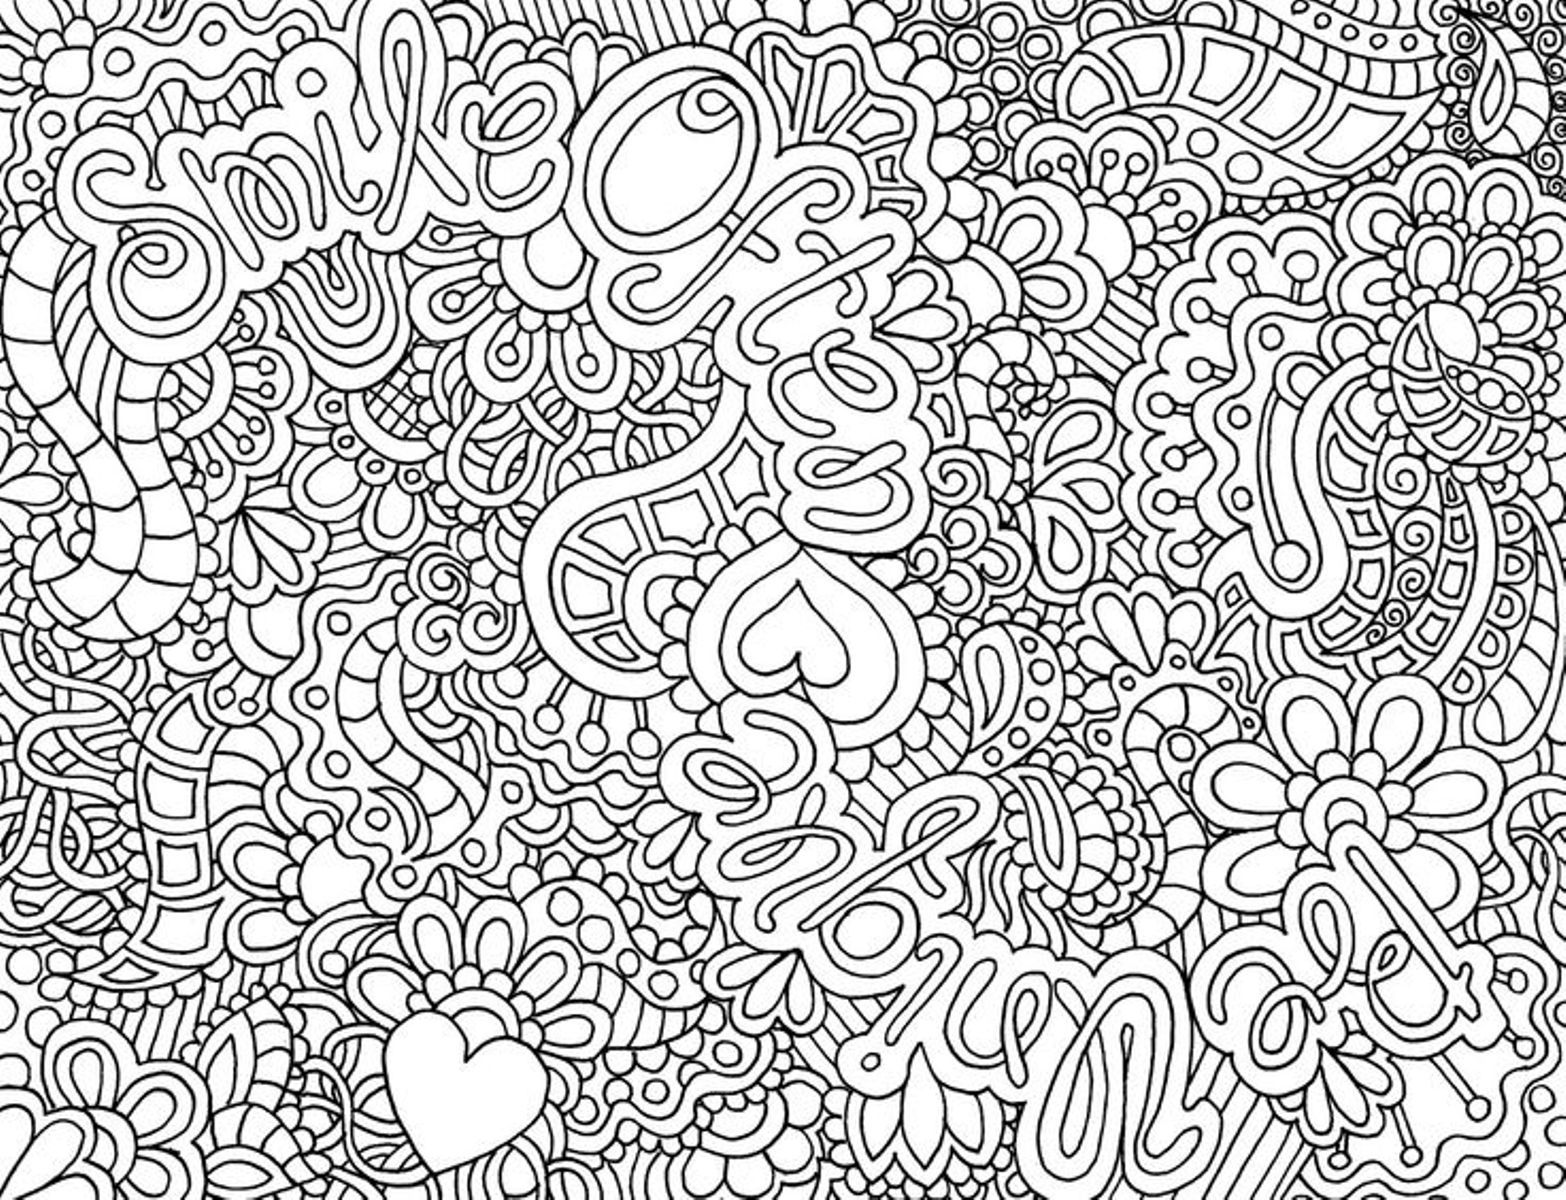 Coloring Pages for Teenagers Difficult  Coloring pages for